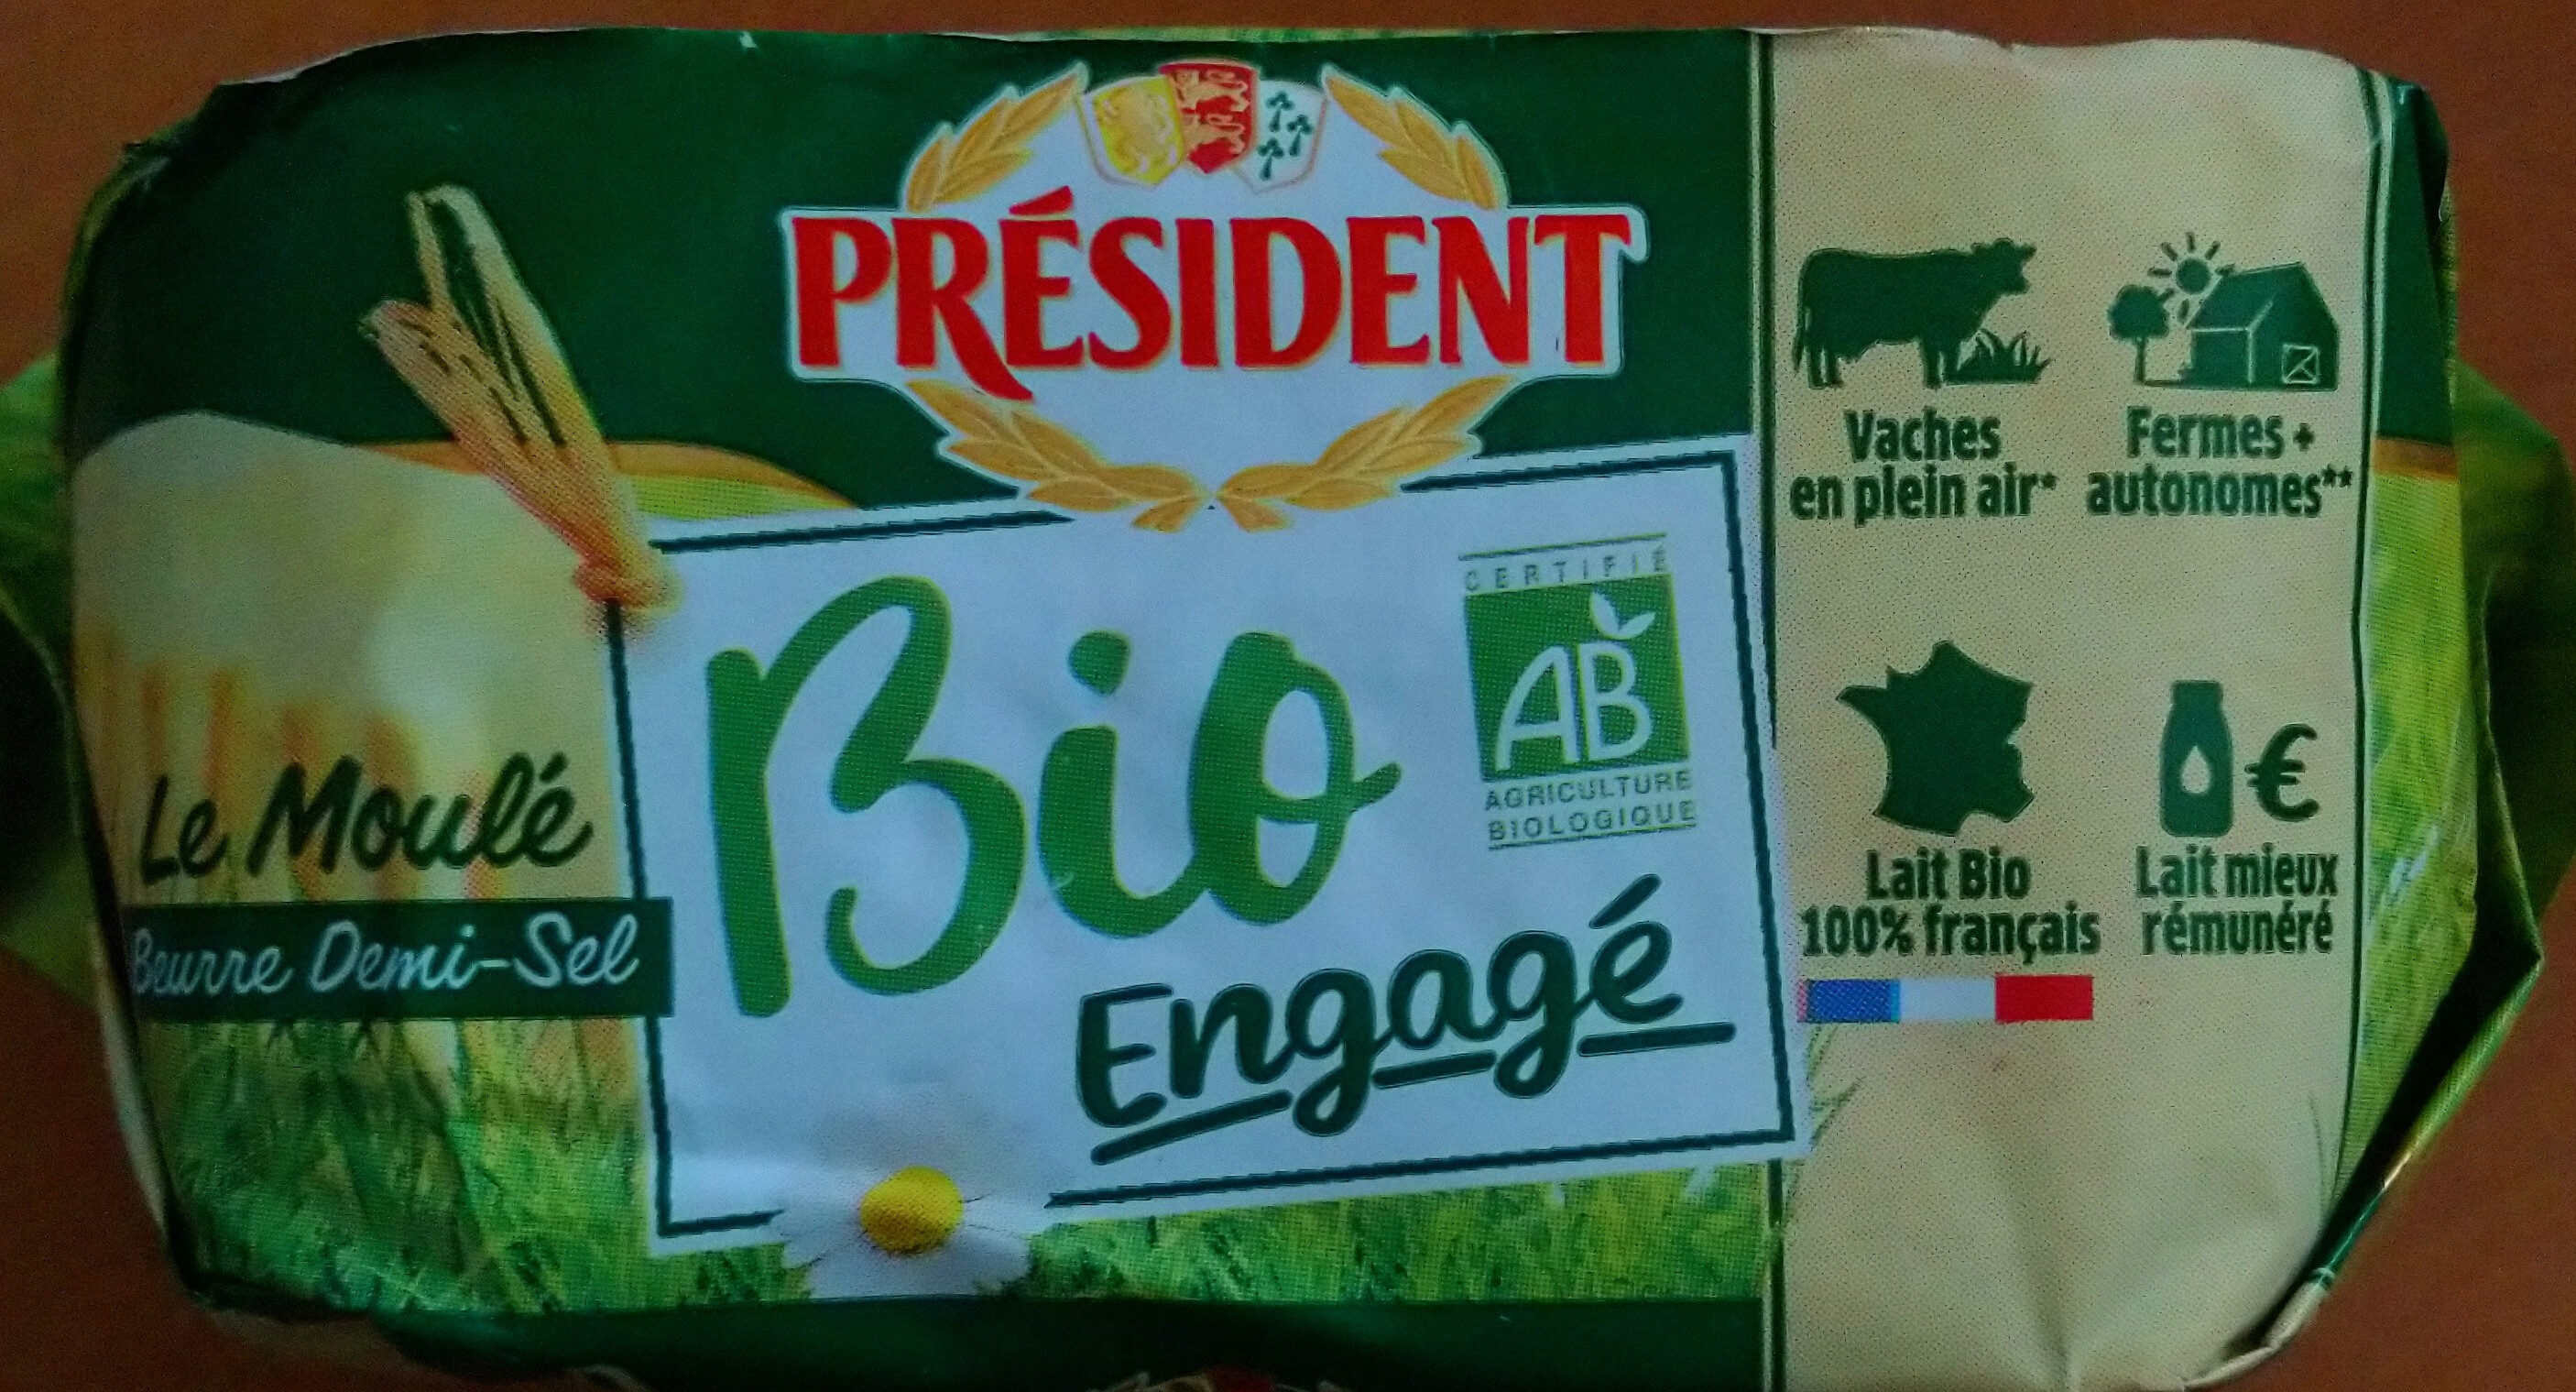 Le moulé Bio Engagé - Product - fr